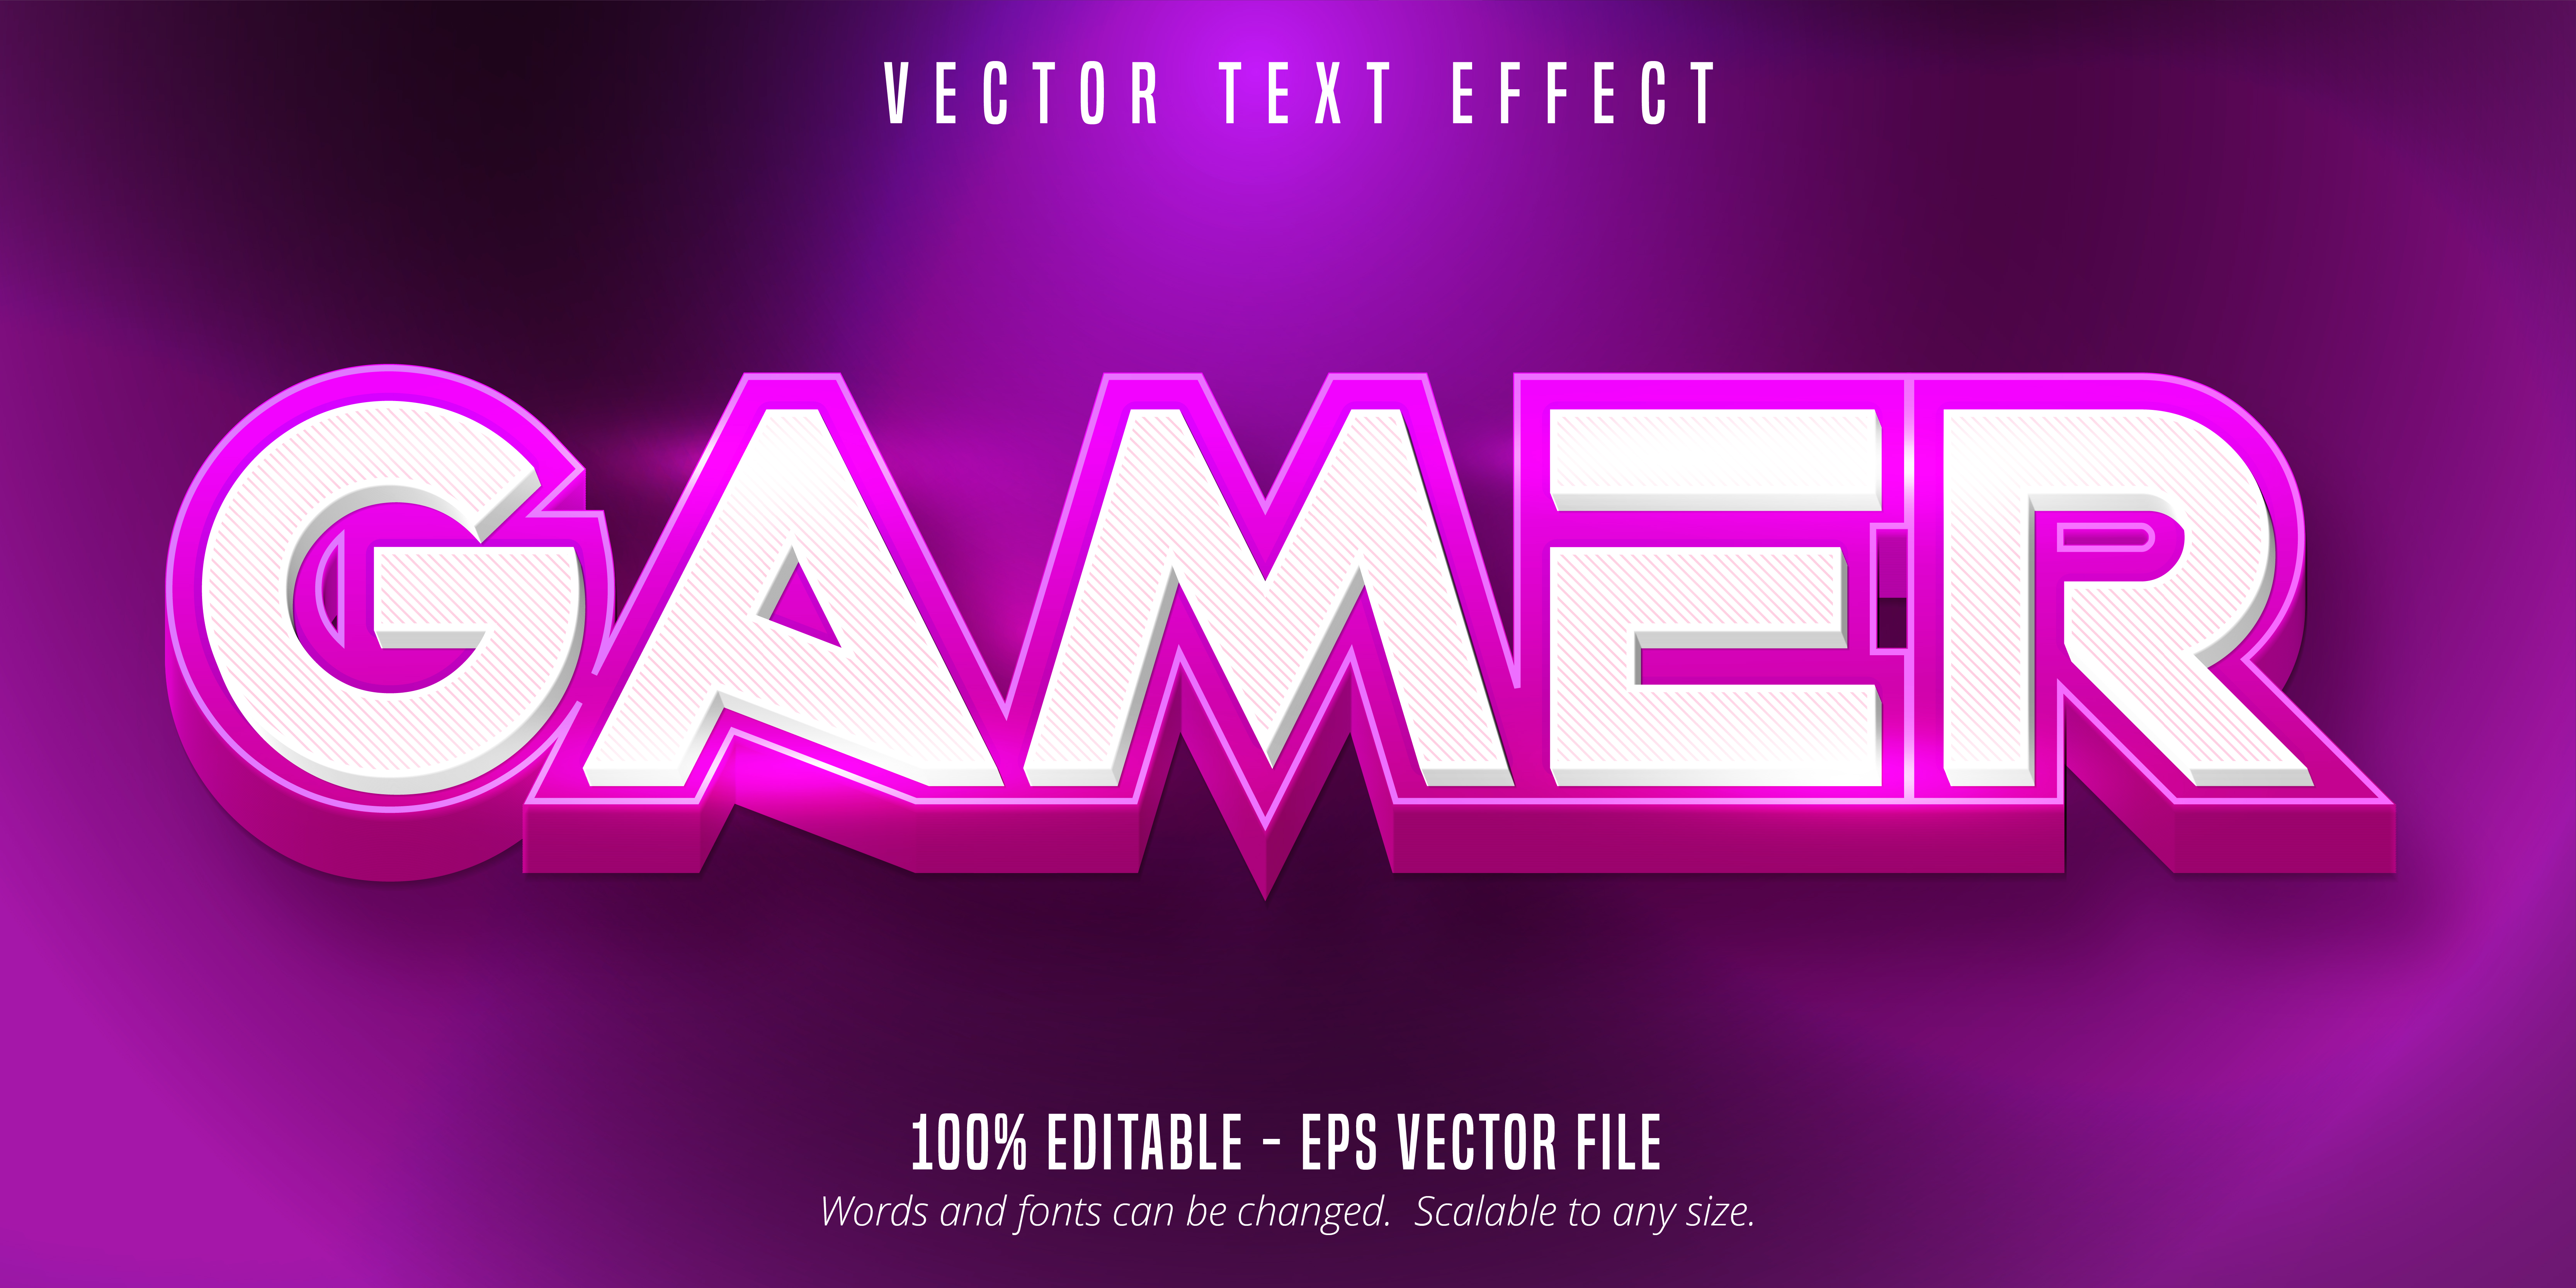 Pink And White Gamer Cartoon Style Editable Text Effect Download Free Vectors Clipart Graphics Vector Art